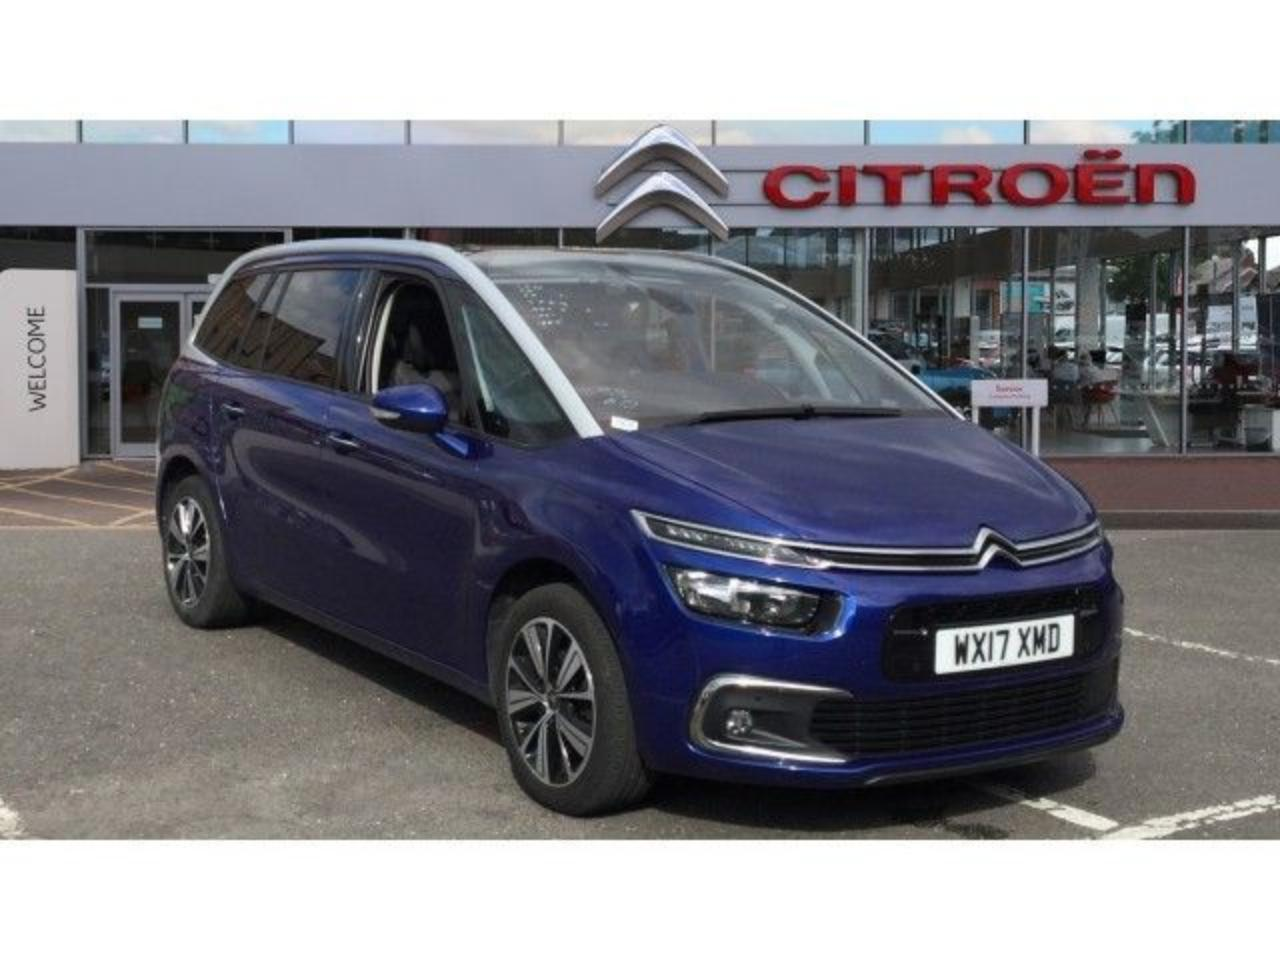 Citroën Grand C4 Picasso 1.6 BlueHDi Flair 5dr Diesel Estate